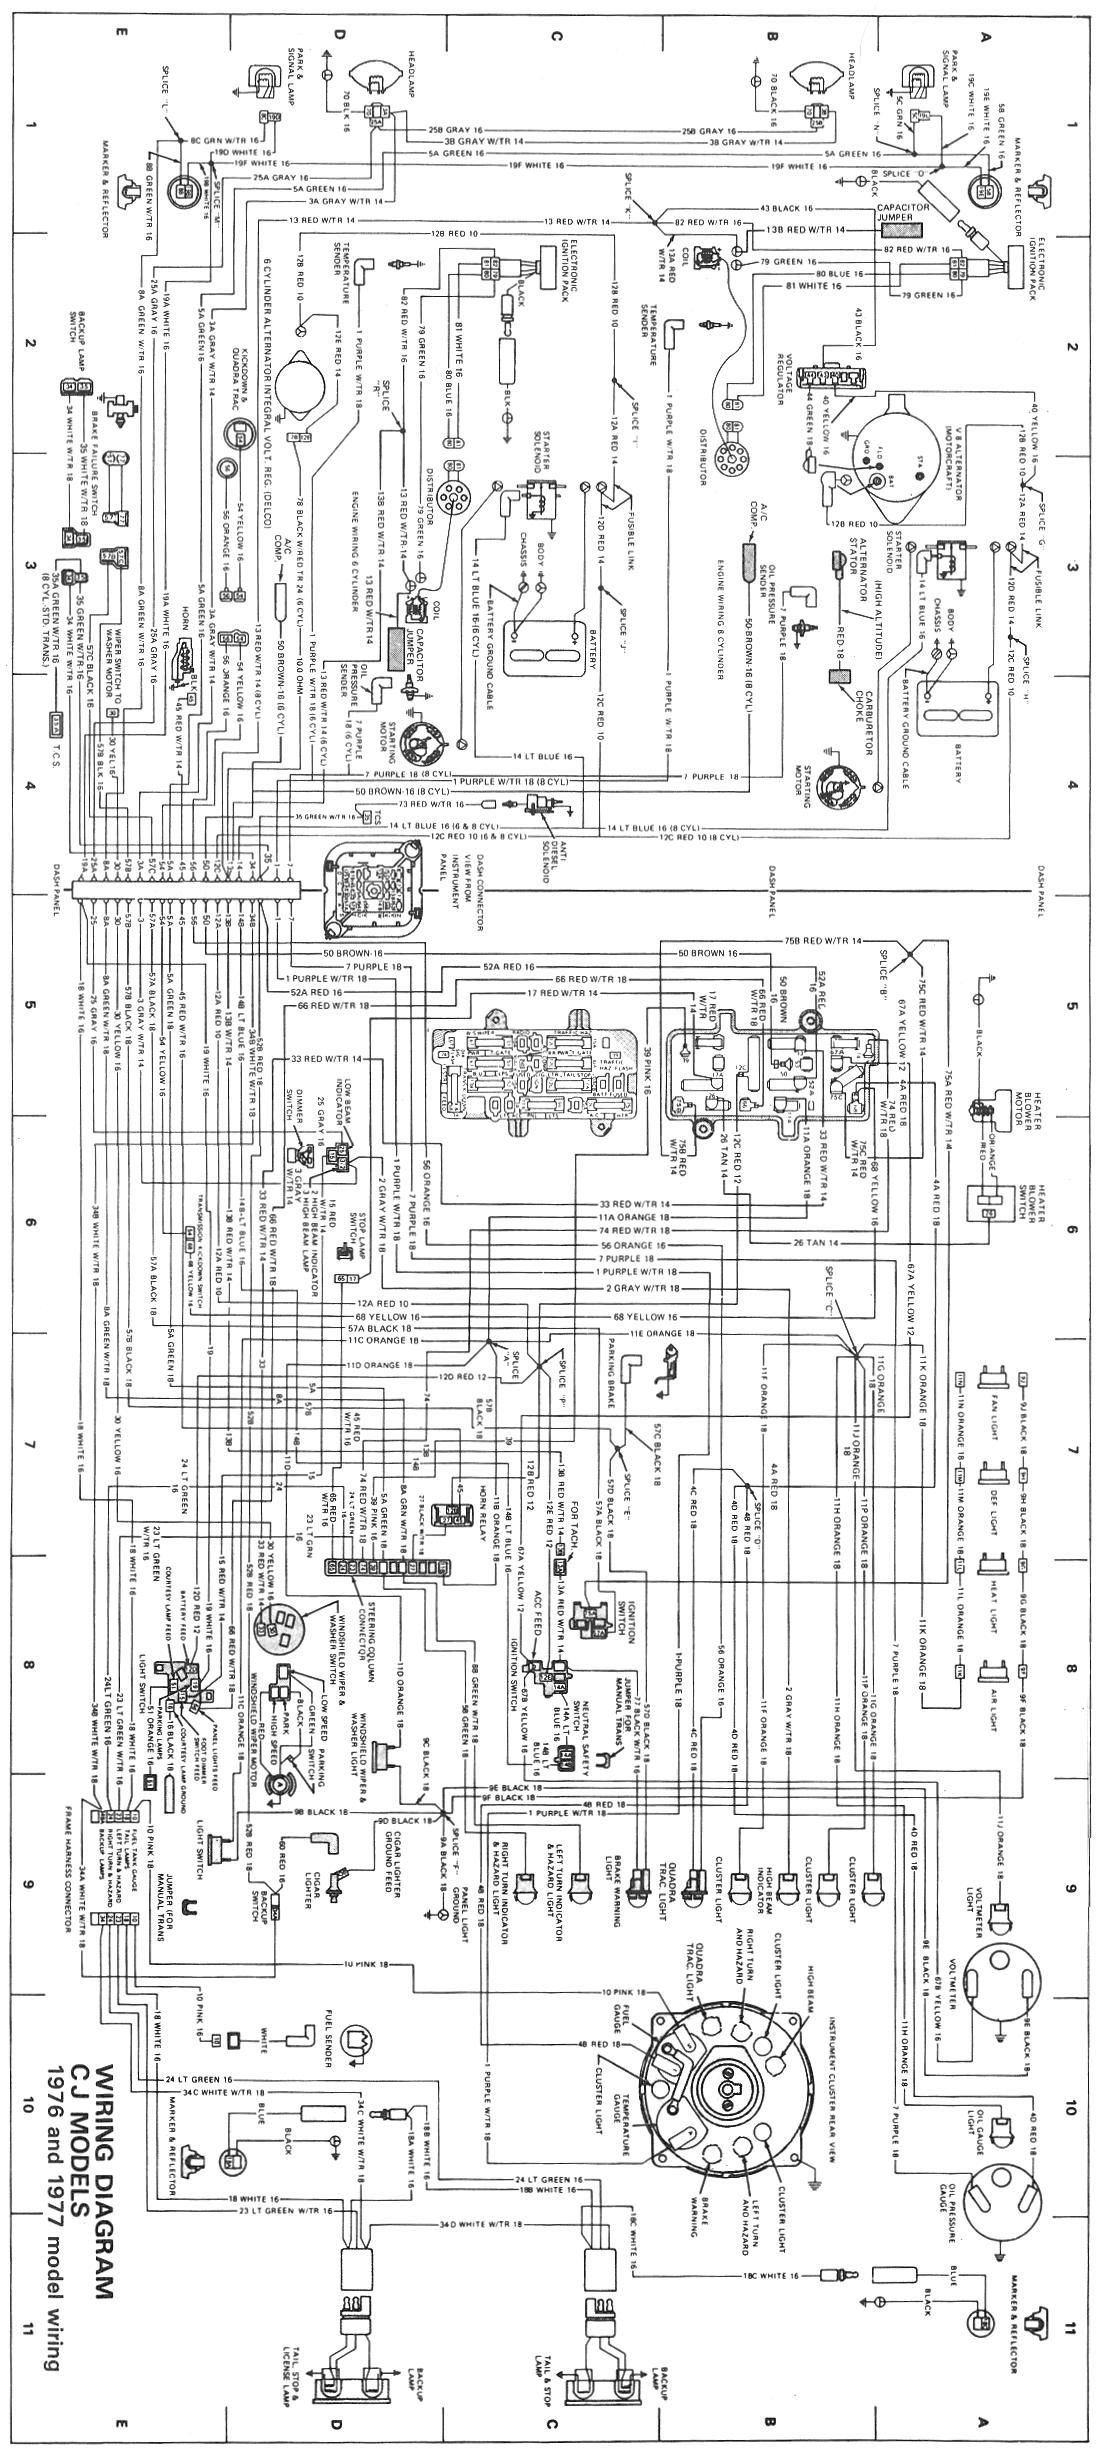 76 Jeep Cj5 Wiring Diagram Archive Of Automotive Cj7 Ac Wire Diagrams 1976 And 1977 Cj Pinterest Rh Com